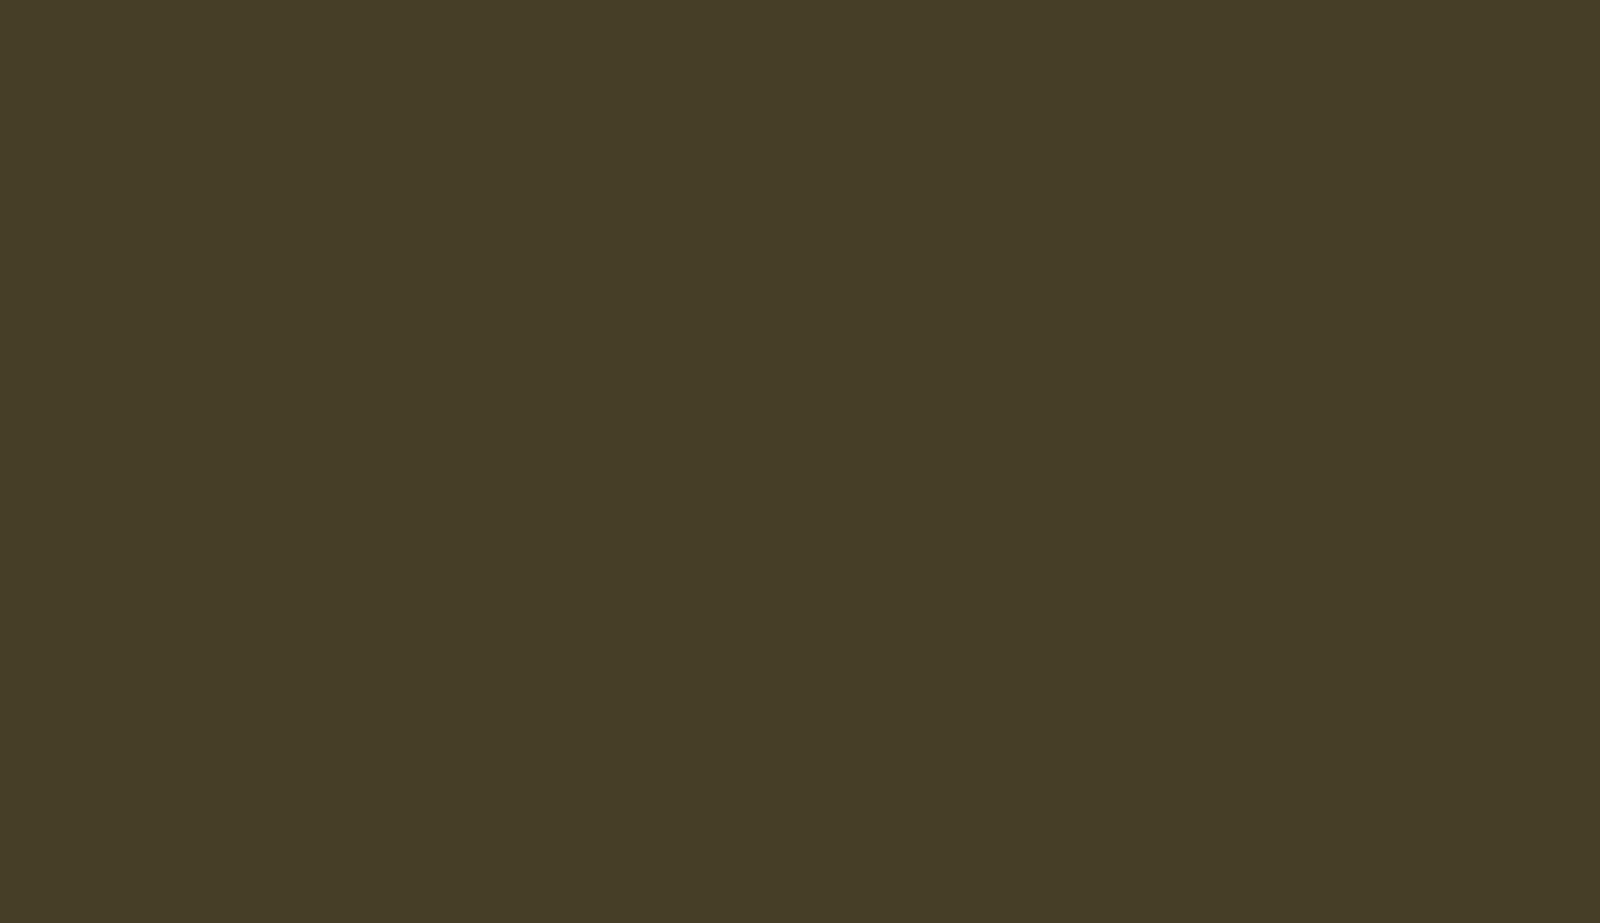 Is This Color Ugly Enough To Make You Quit Smoking The